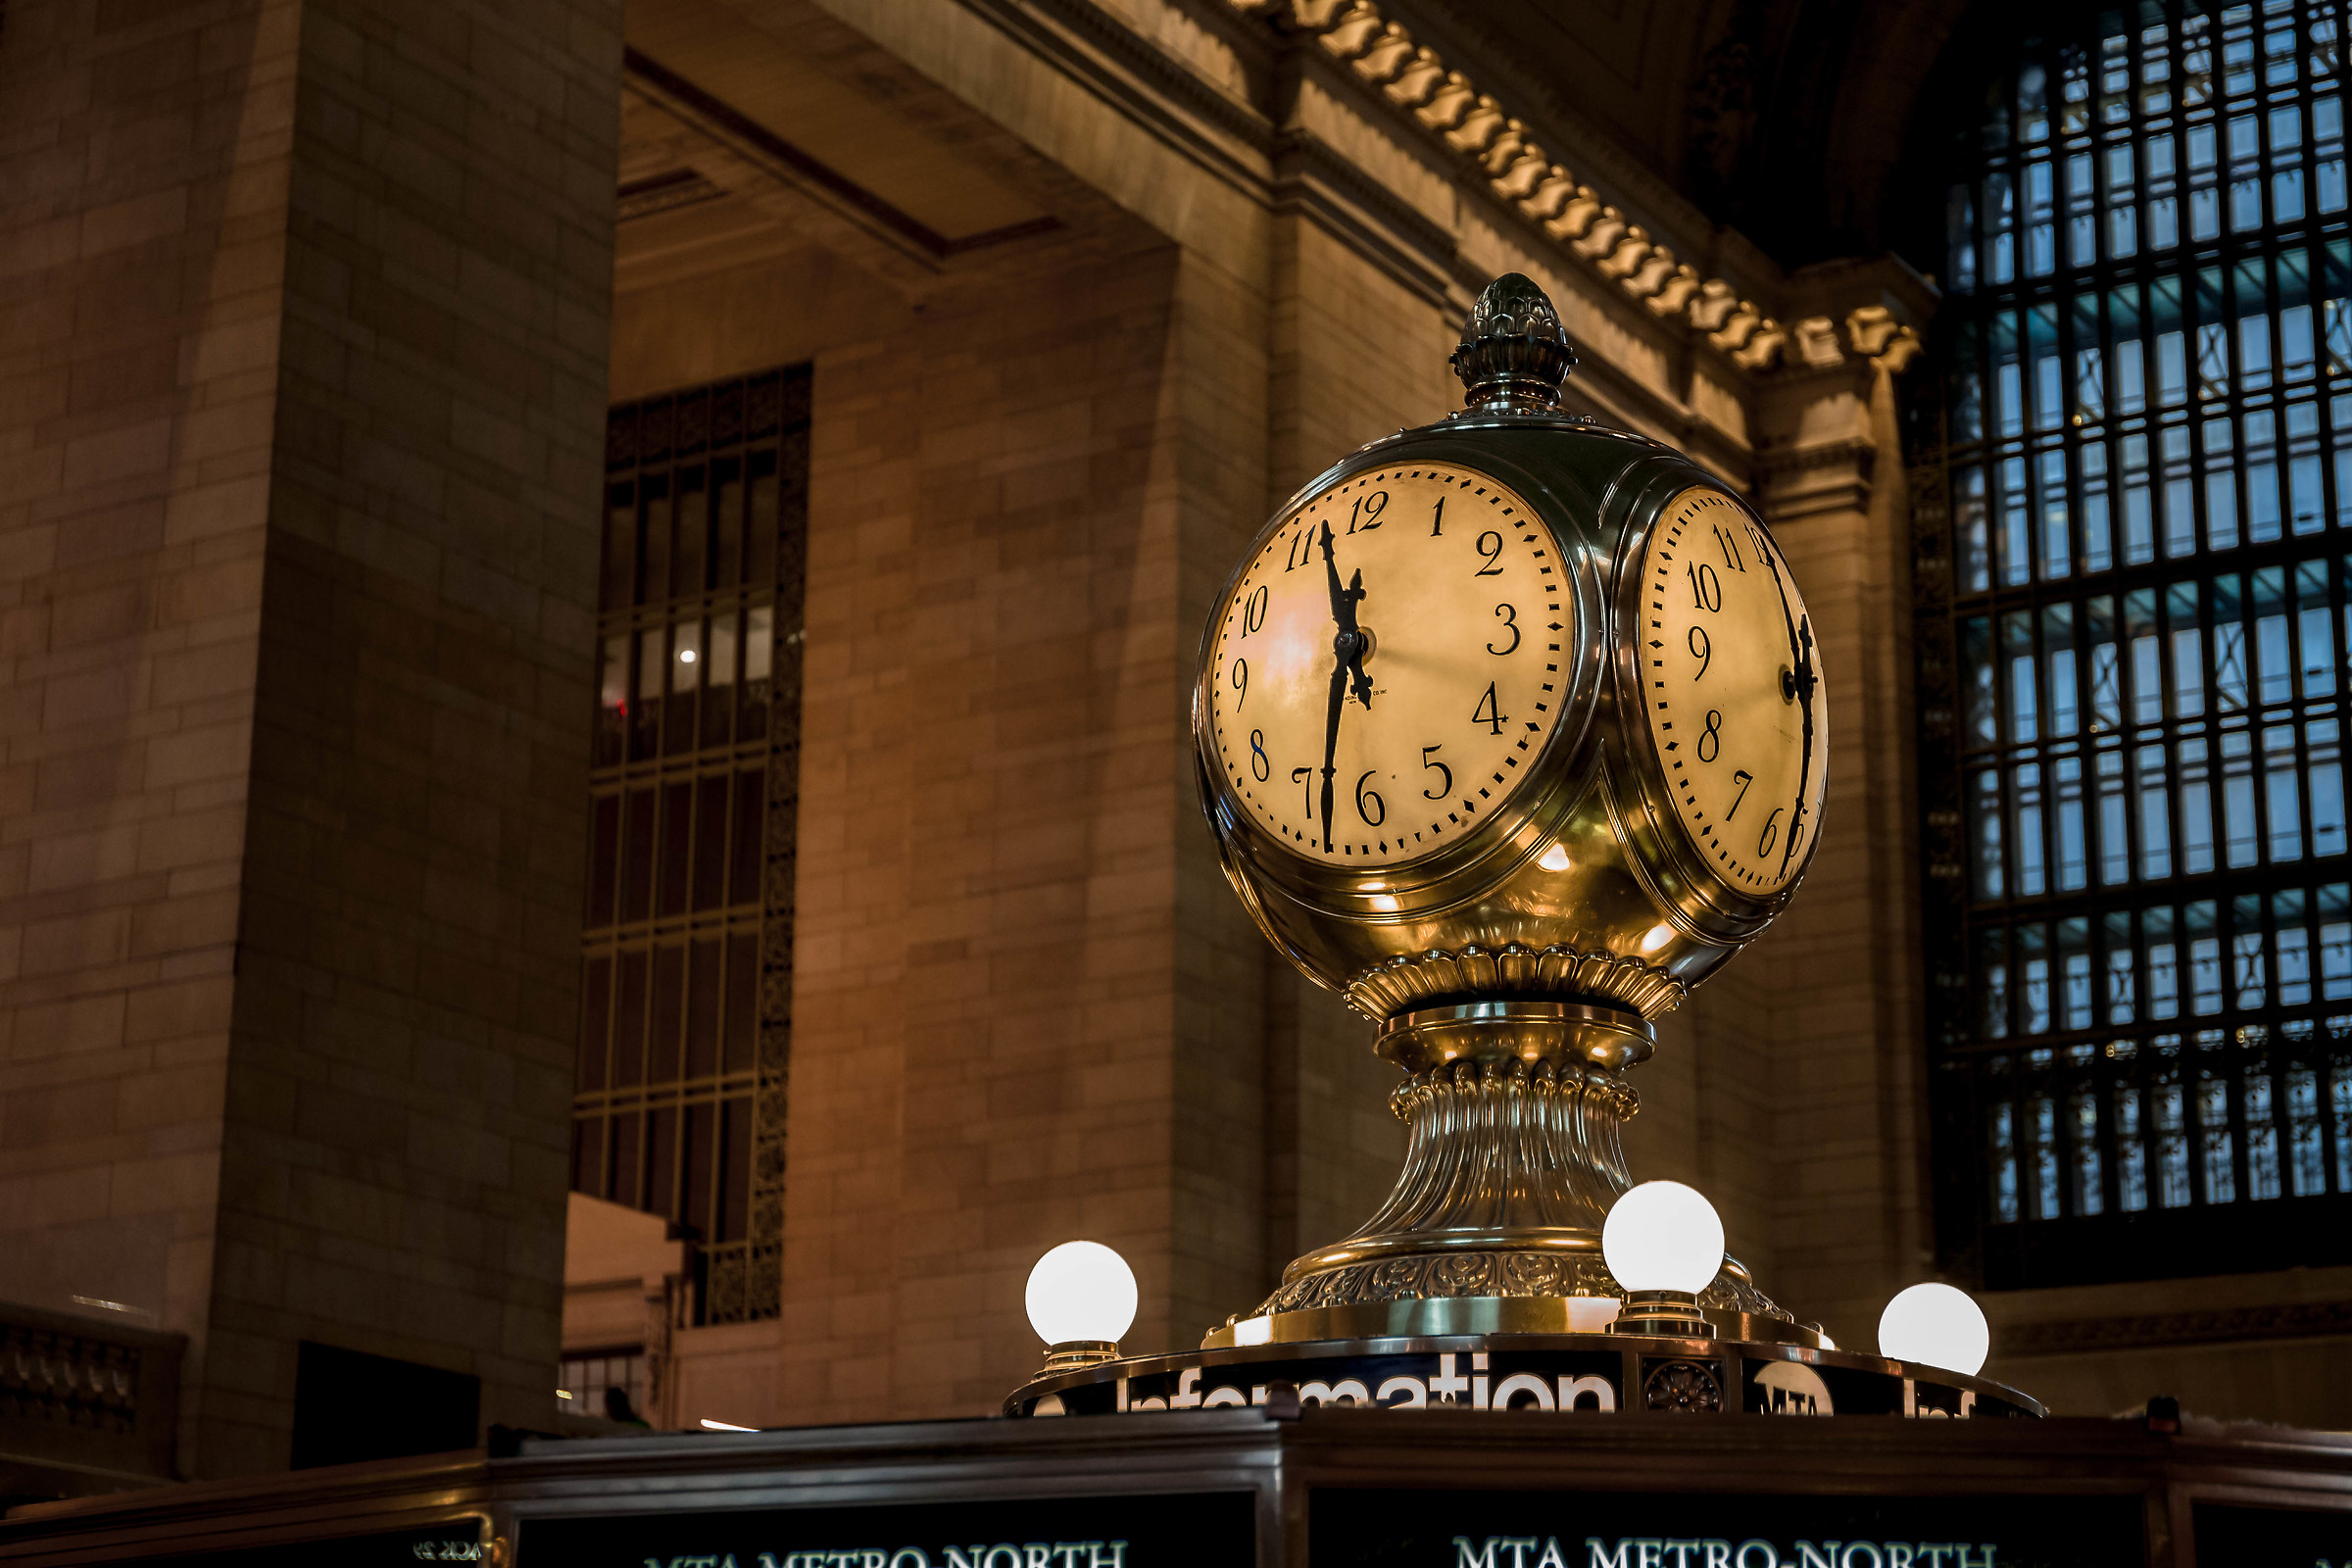 Grand national station's clock, NY...